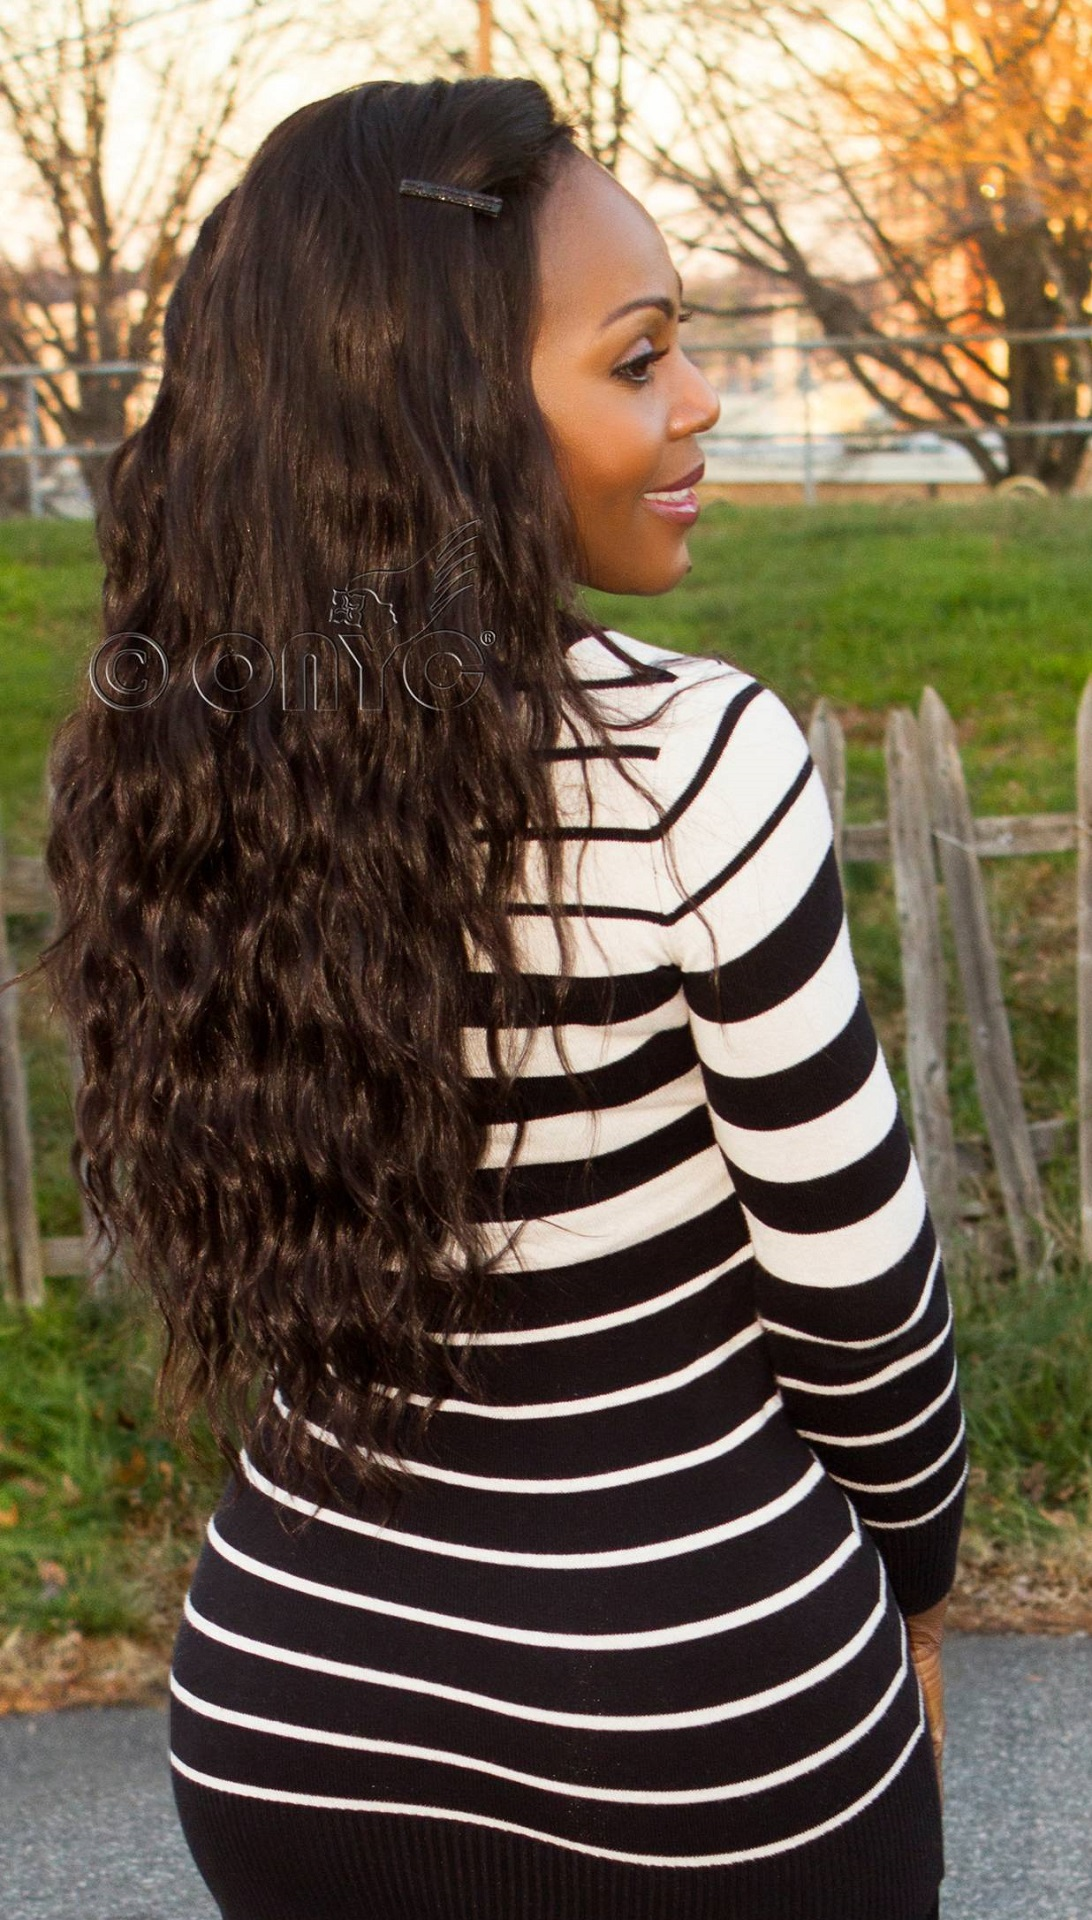 Easy To Manage ONYC Body 2 Wavy Hair In Natural State